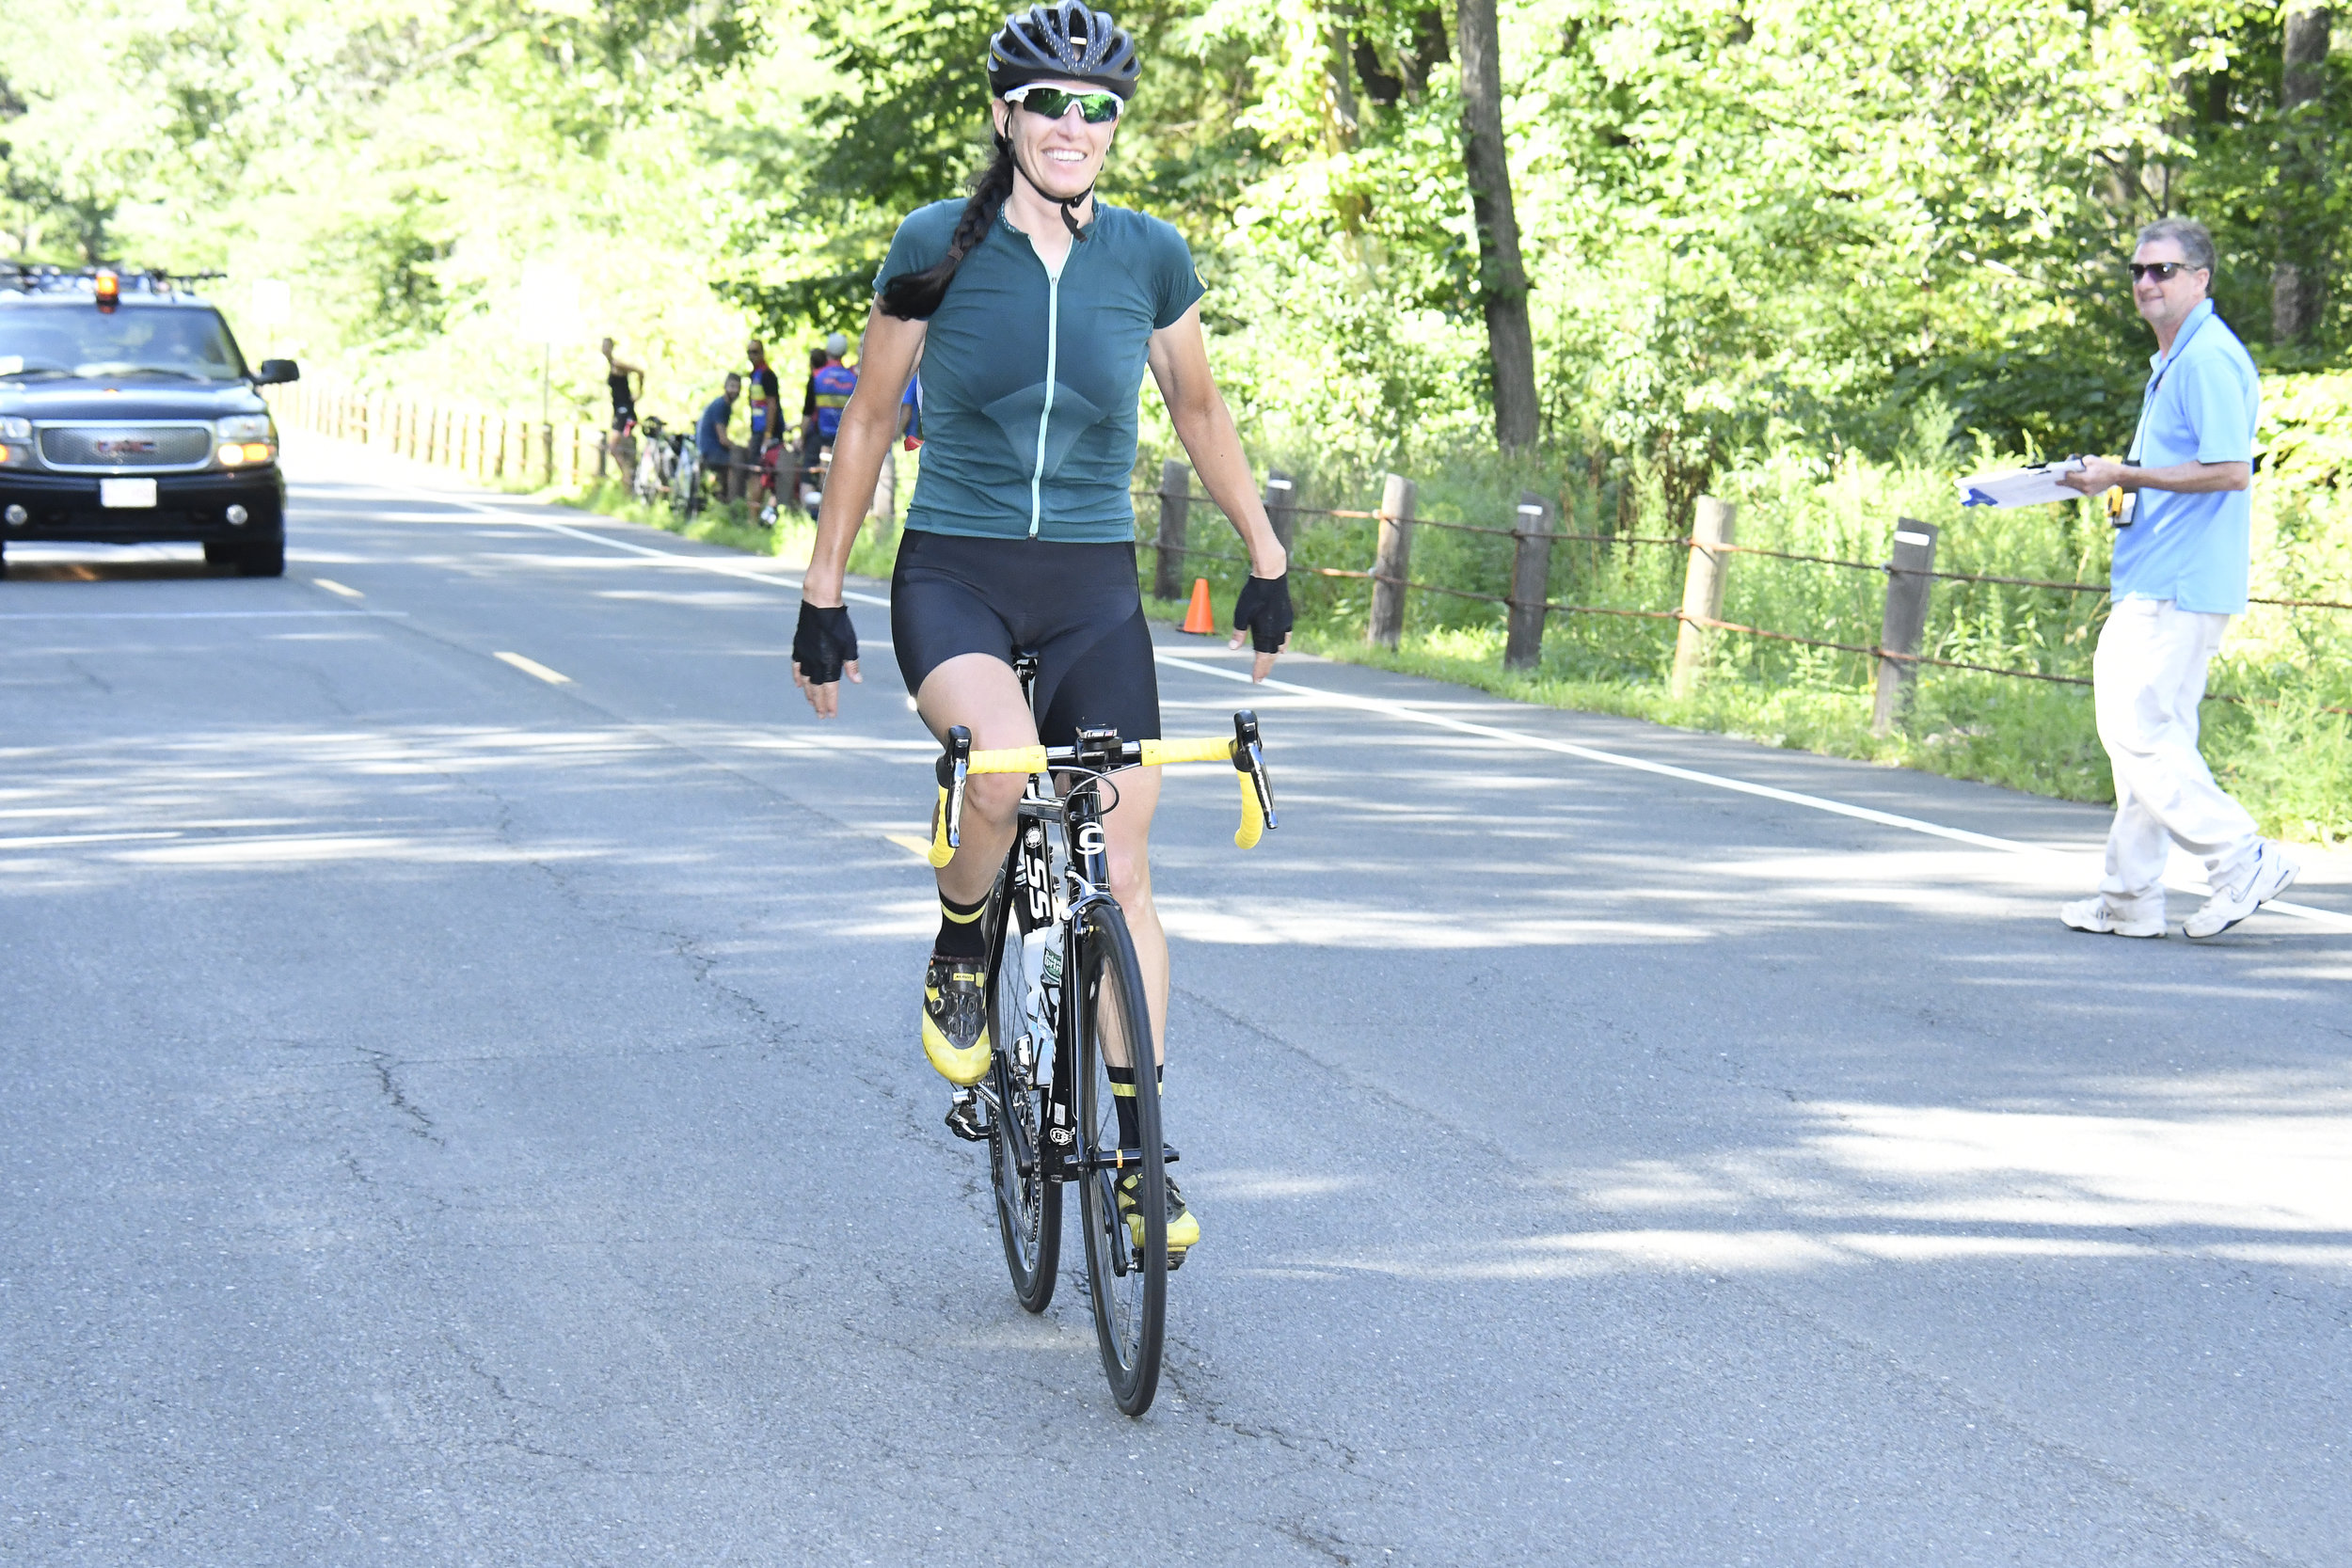 The post-post-up shot! Thanks to  BaseTwelve Photo  for capturing my Connecticut State Championship win at the  Aetna Tokeneke Classic Road Race  last weekend. While not the most flattering photo, this image captures a lot of meaning.